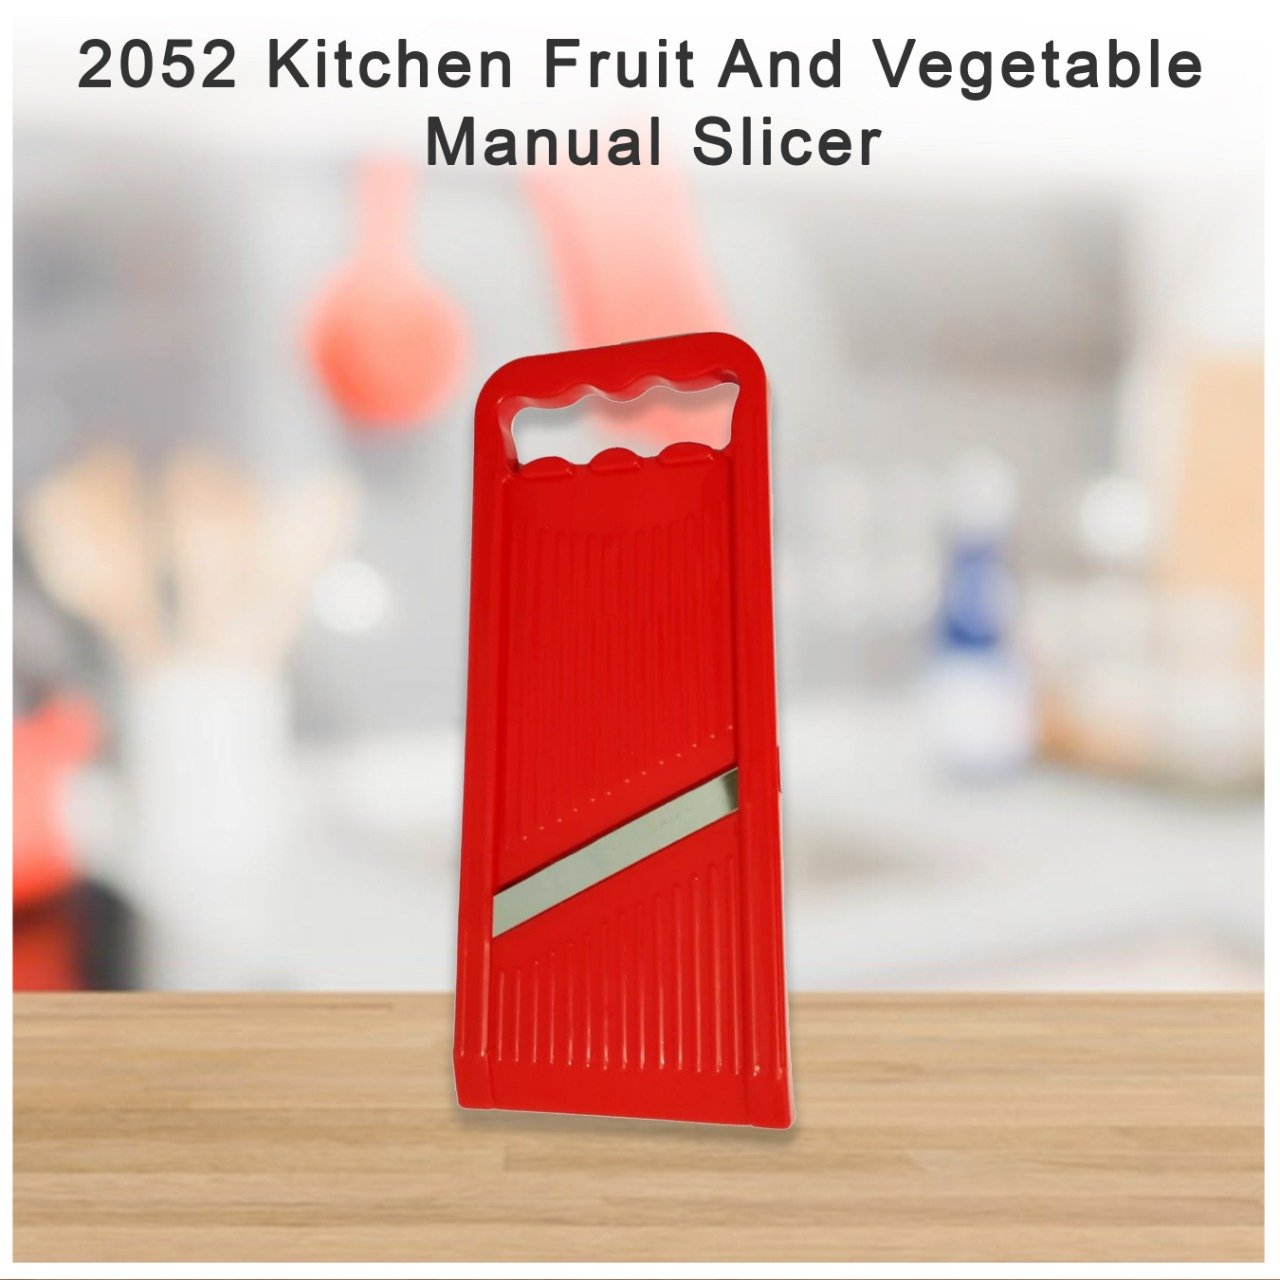 Kitchen Fruit And Vegetable Manual Slicer